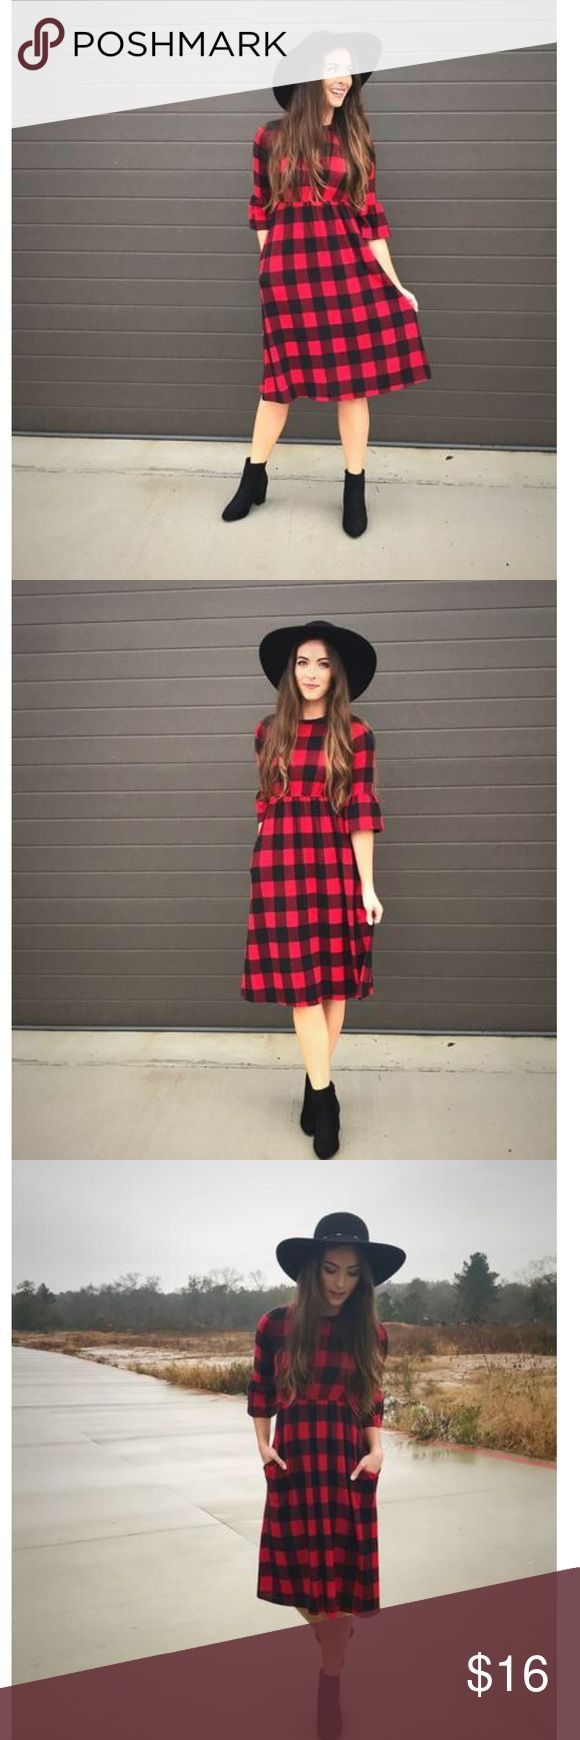 Plaid dress This is a very soft, red and black plaid dress from an online boutique. Size small and new with tags flamingo urban Dresses